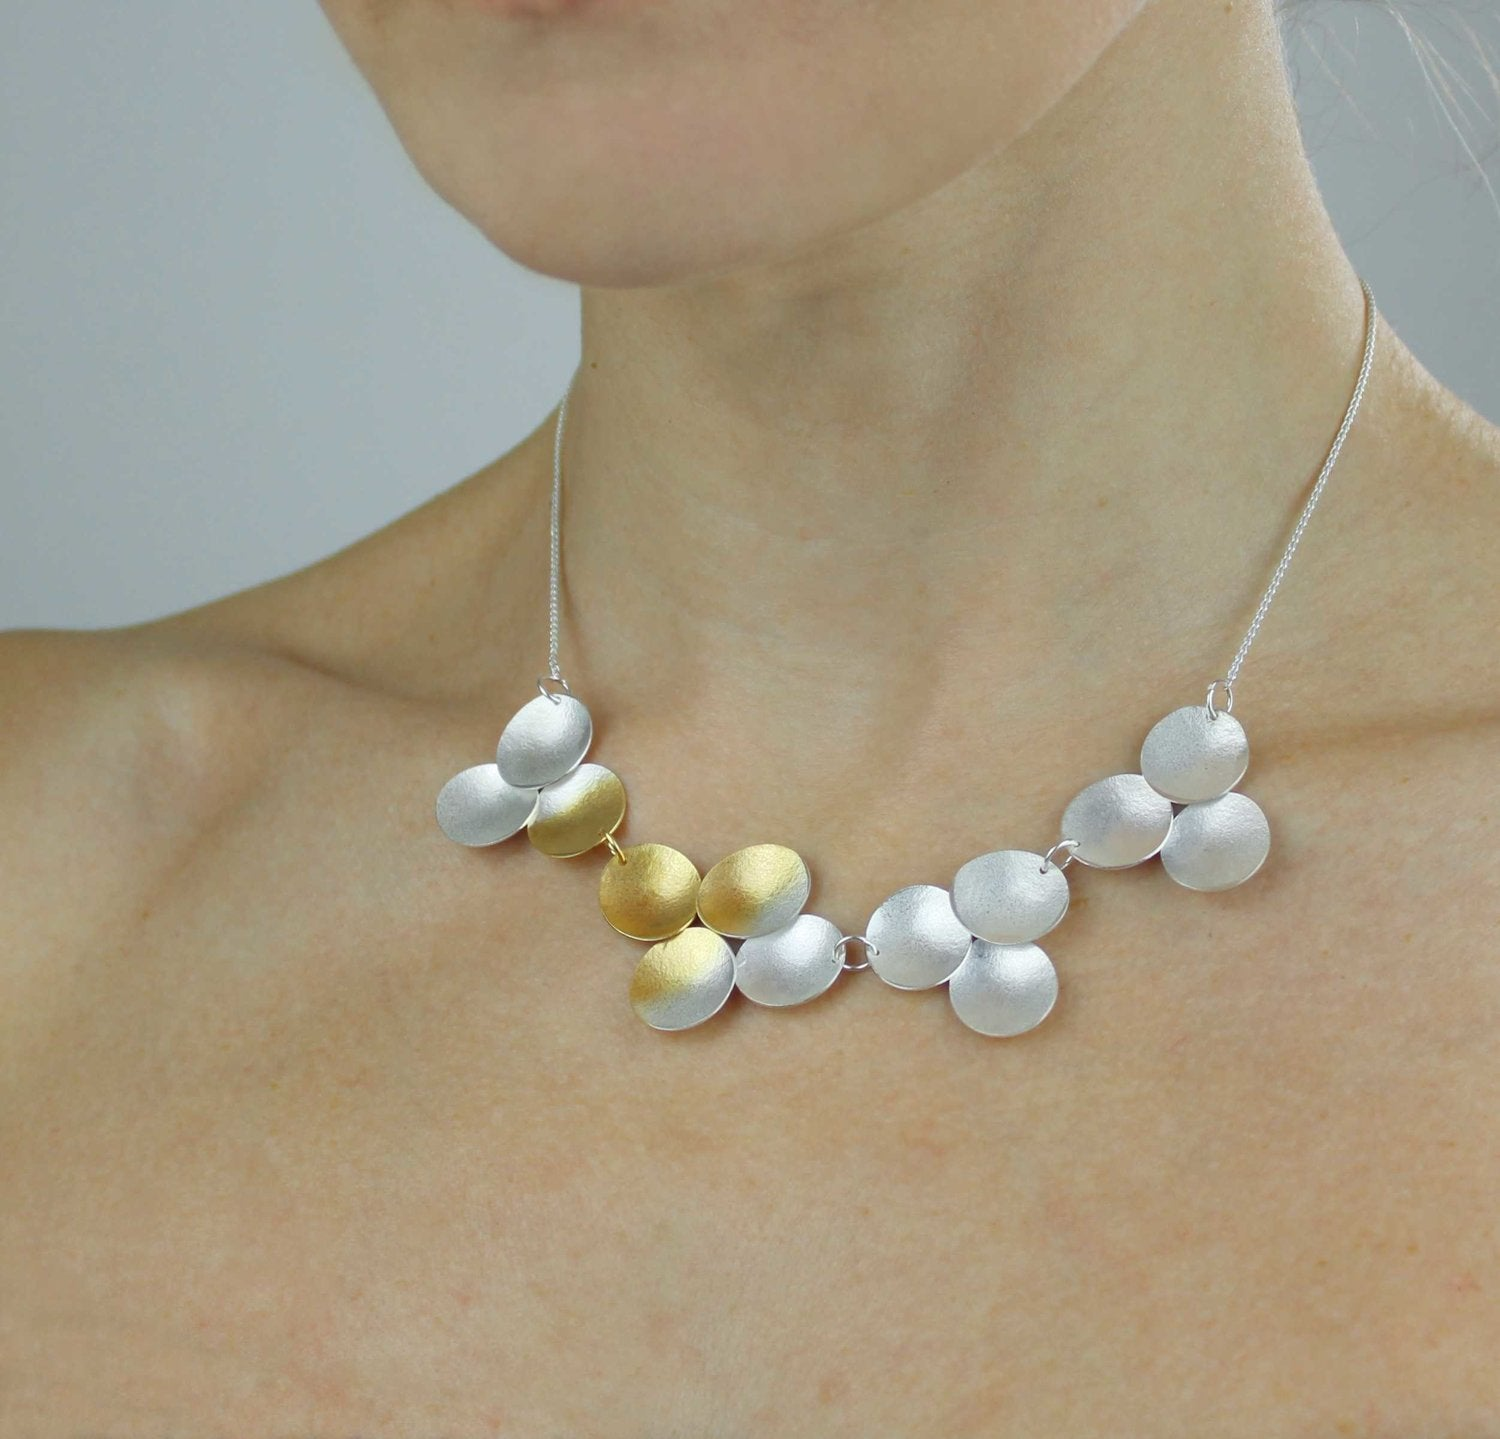 Electra Necklace on Model